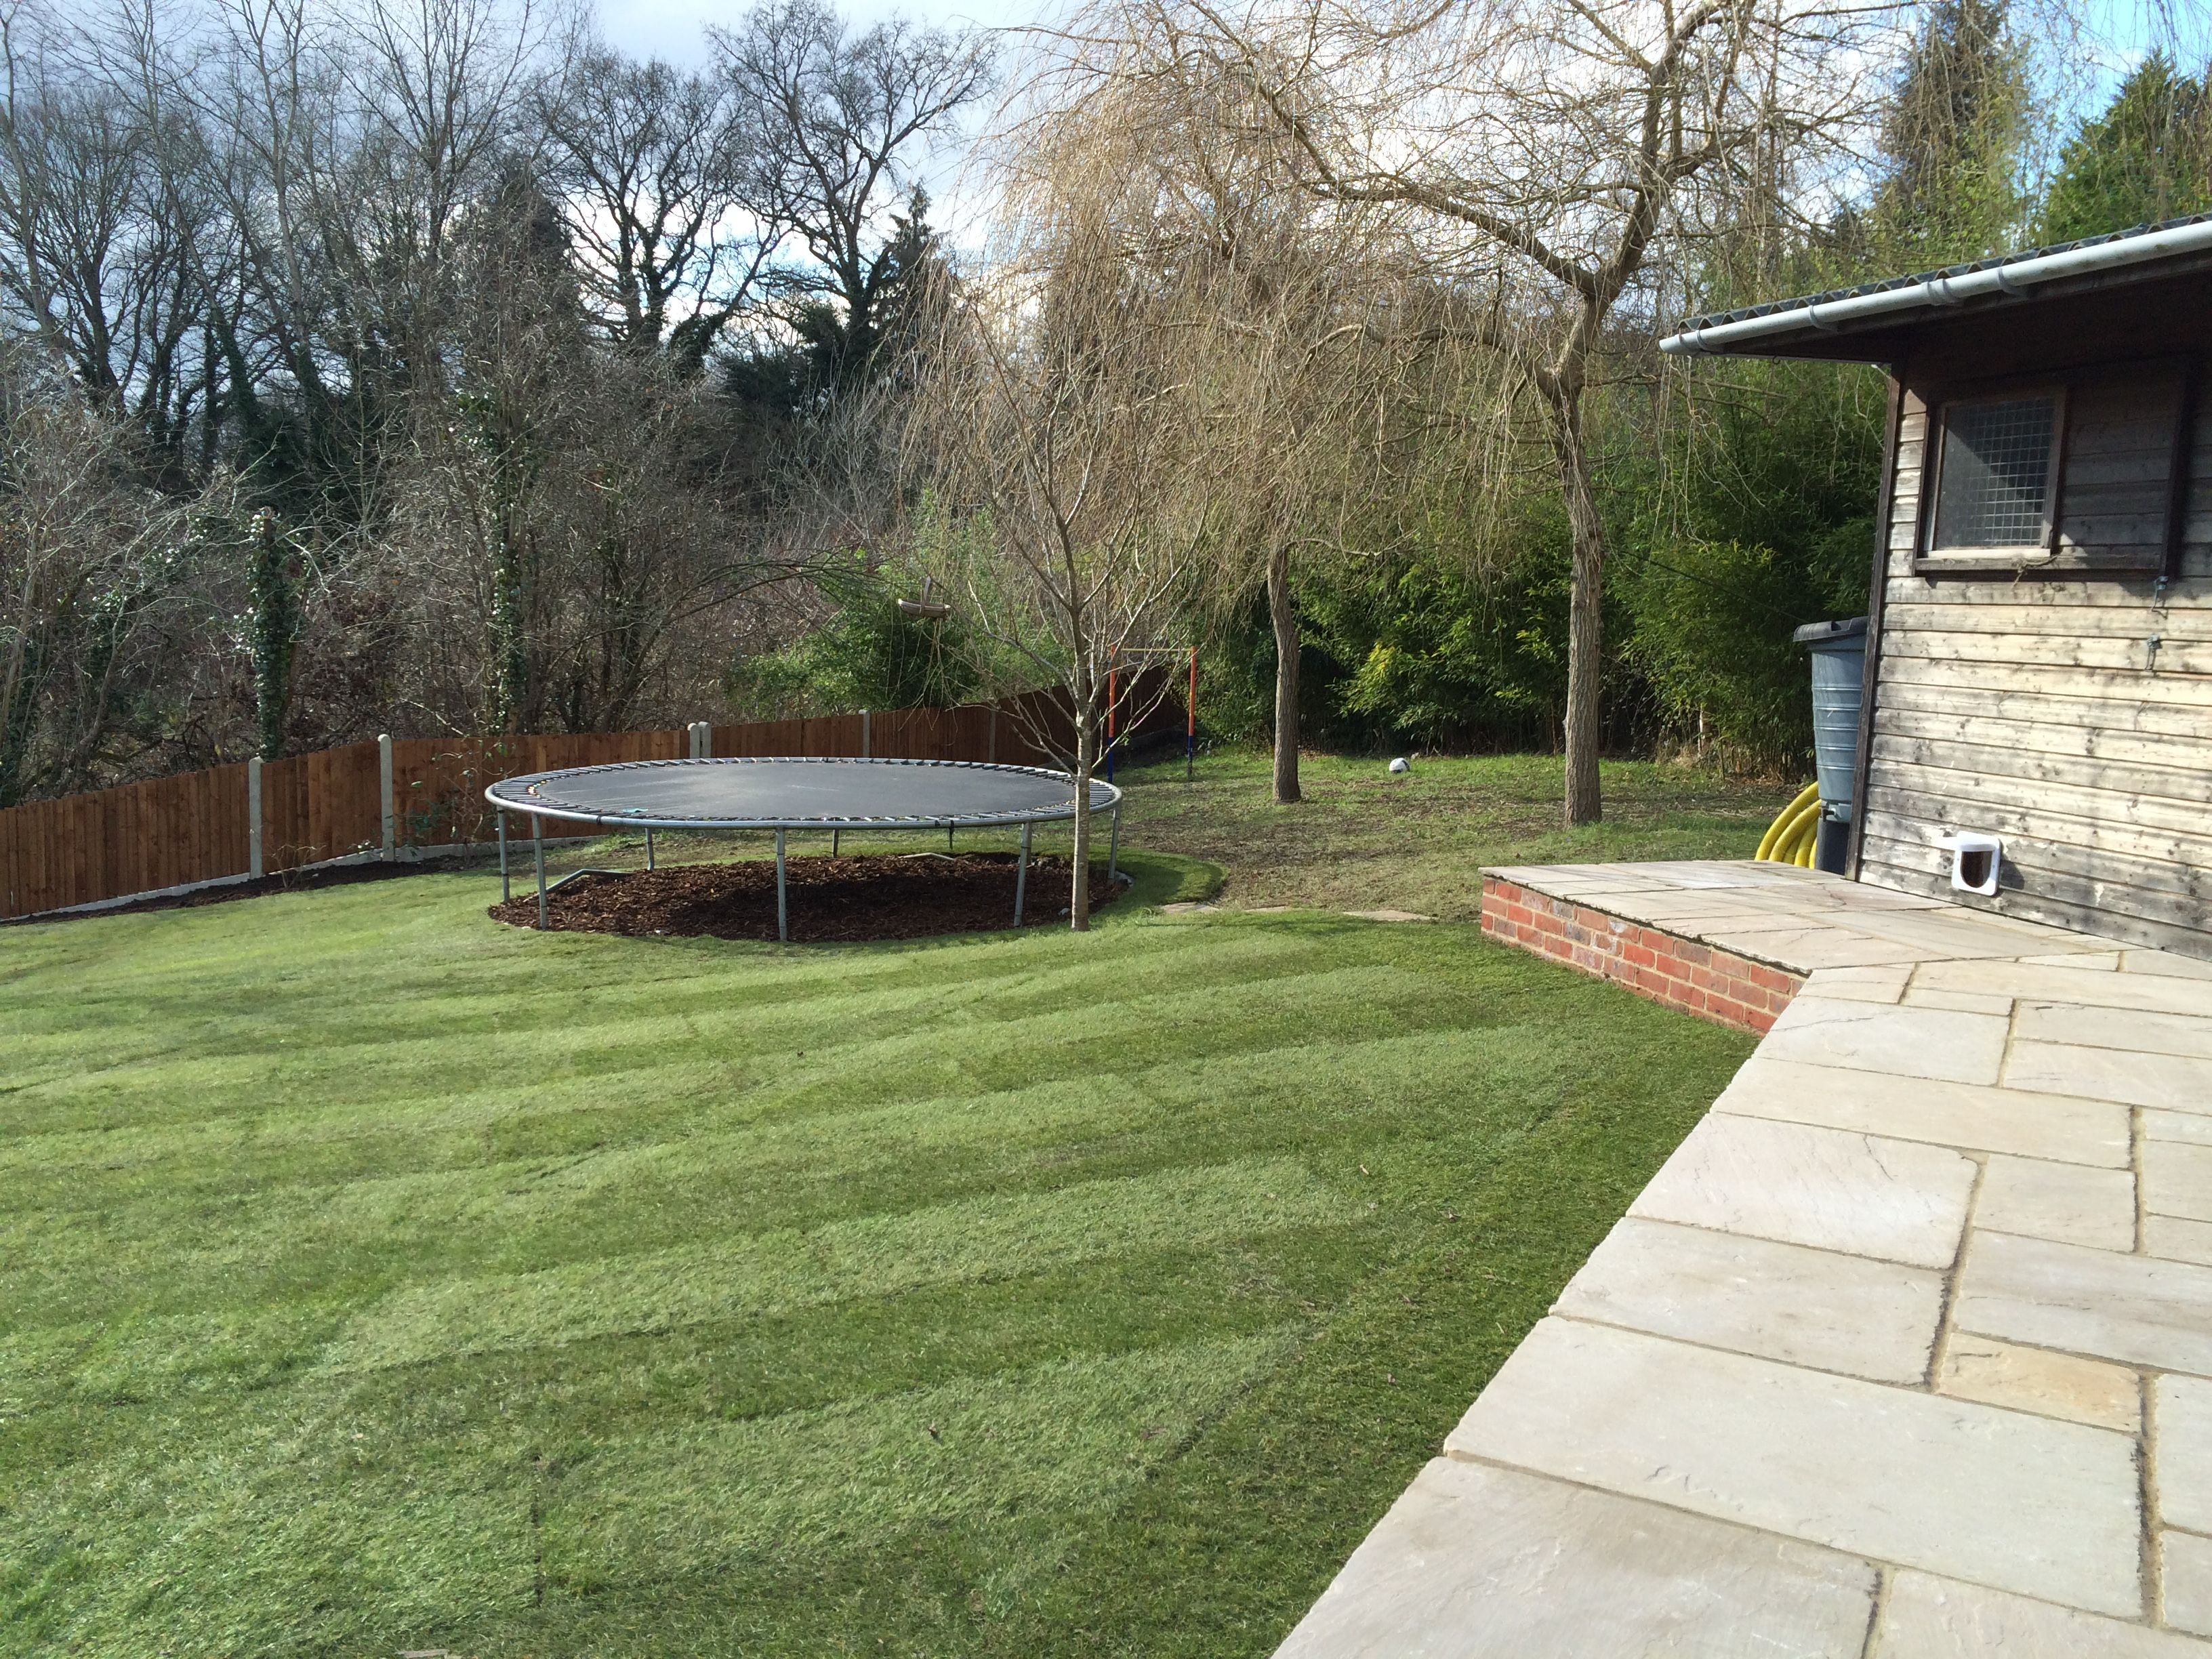 Marvelous New Patio Overlooking Lawn Area And Trampoline.